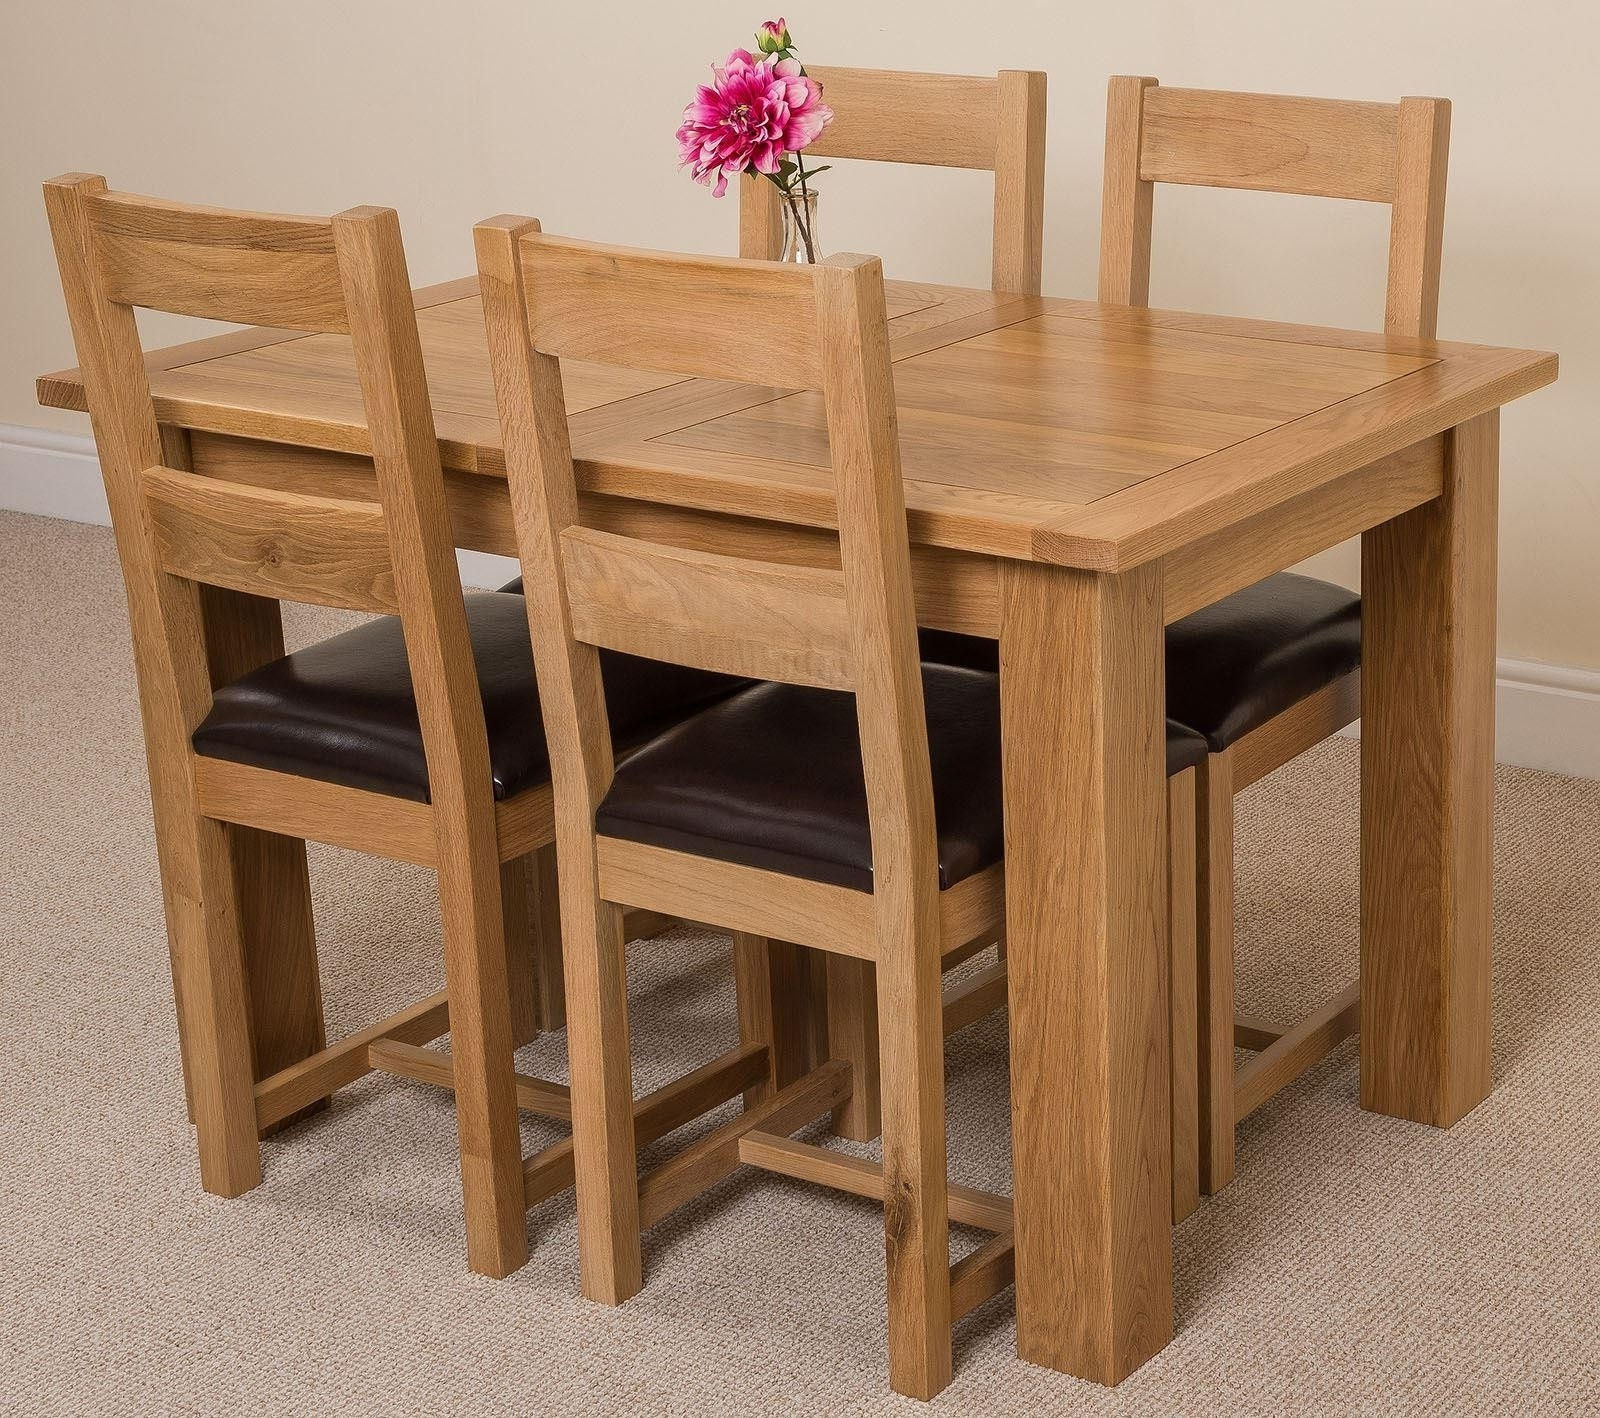 Oak Furniture King Regarding Favorite Oak Extending Dining Tables And 4 Chairs (View 12 of 25)